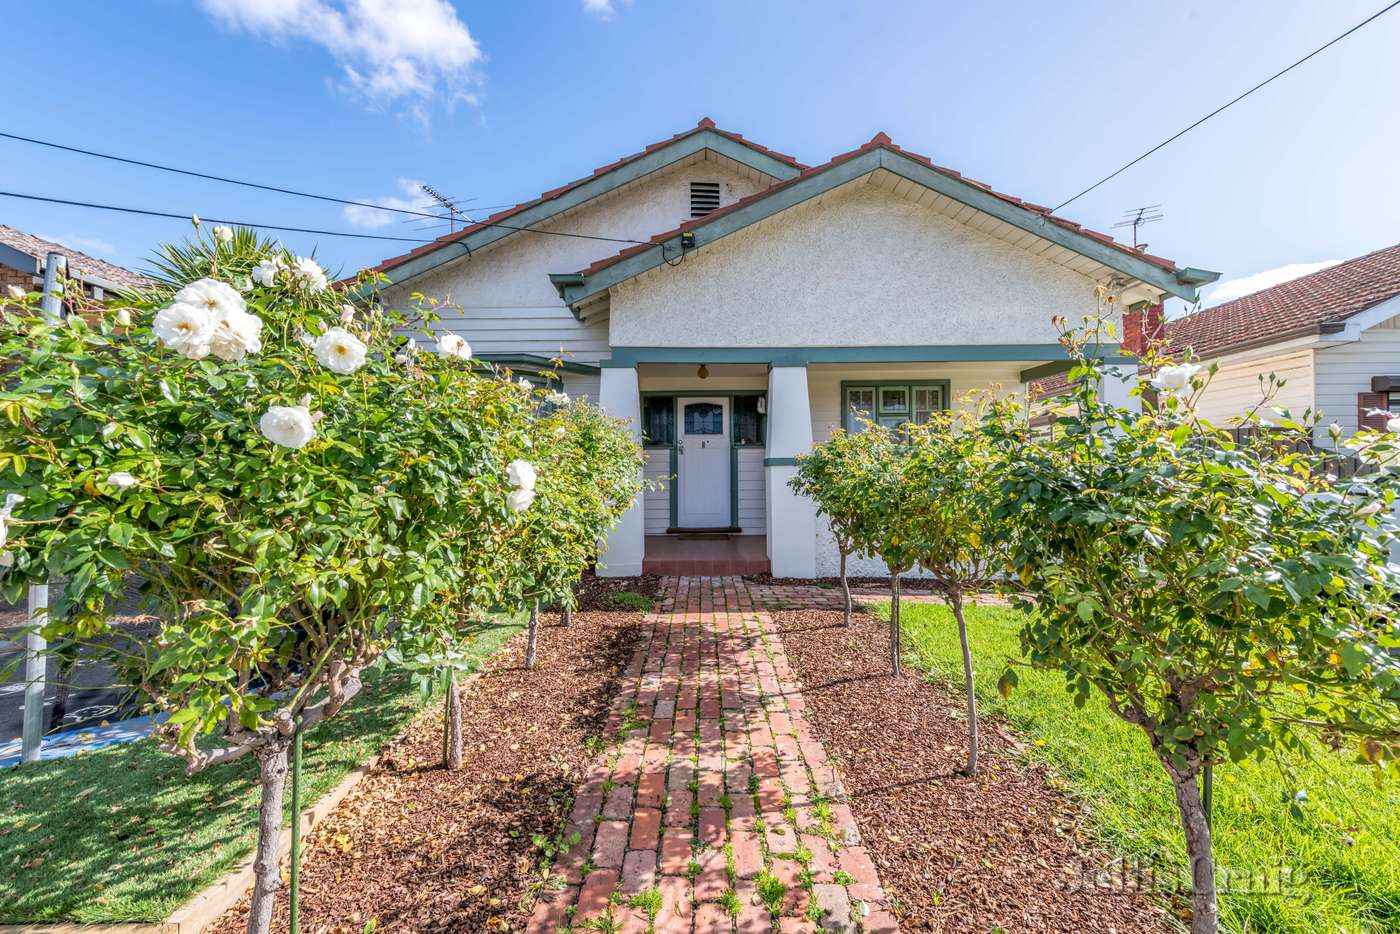 Main view of Homely house listing, 5 Statters Street, Coburg VIC 3058